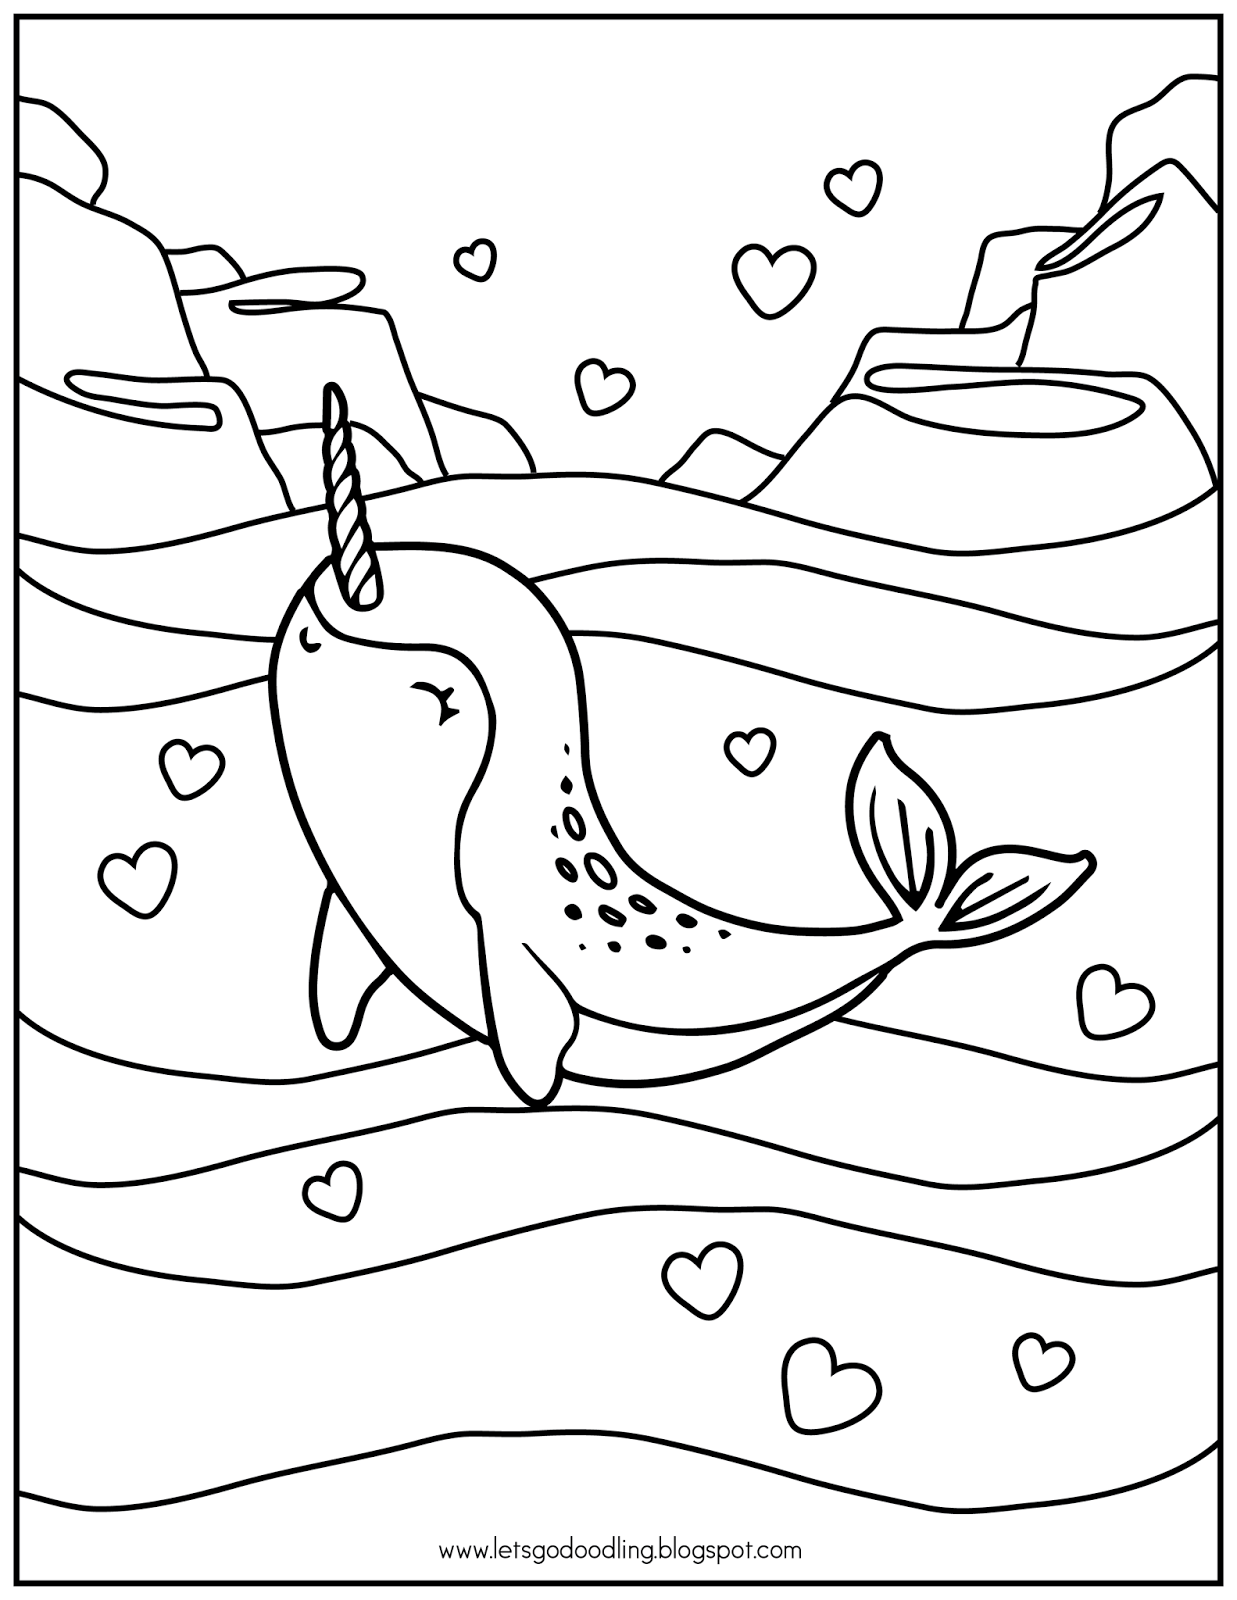 cute narwhal coloring page free printable coloring page narwhal narwhal cute coloring page